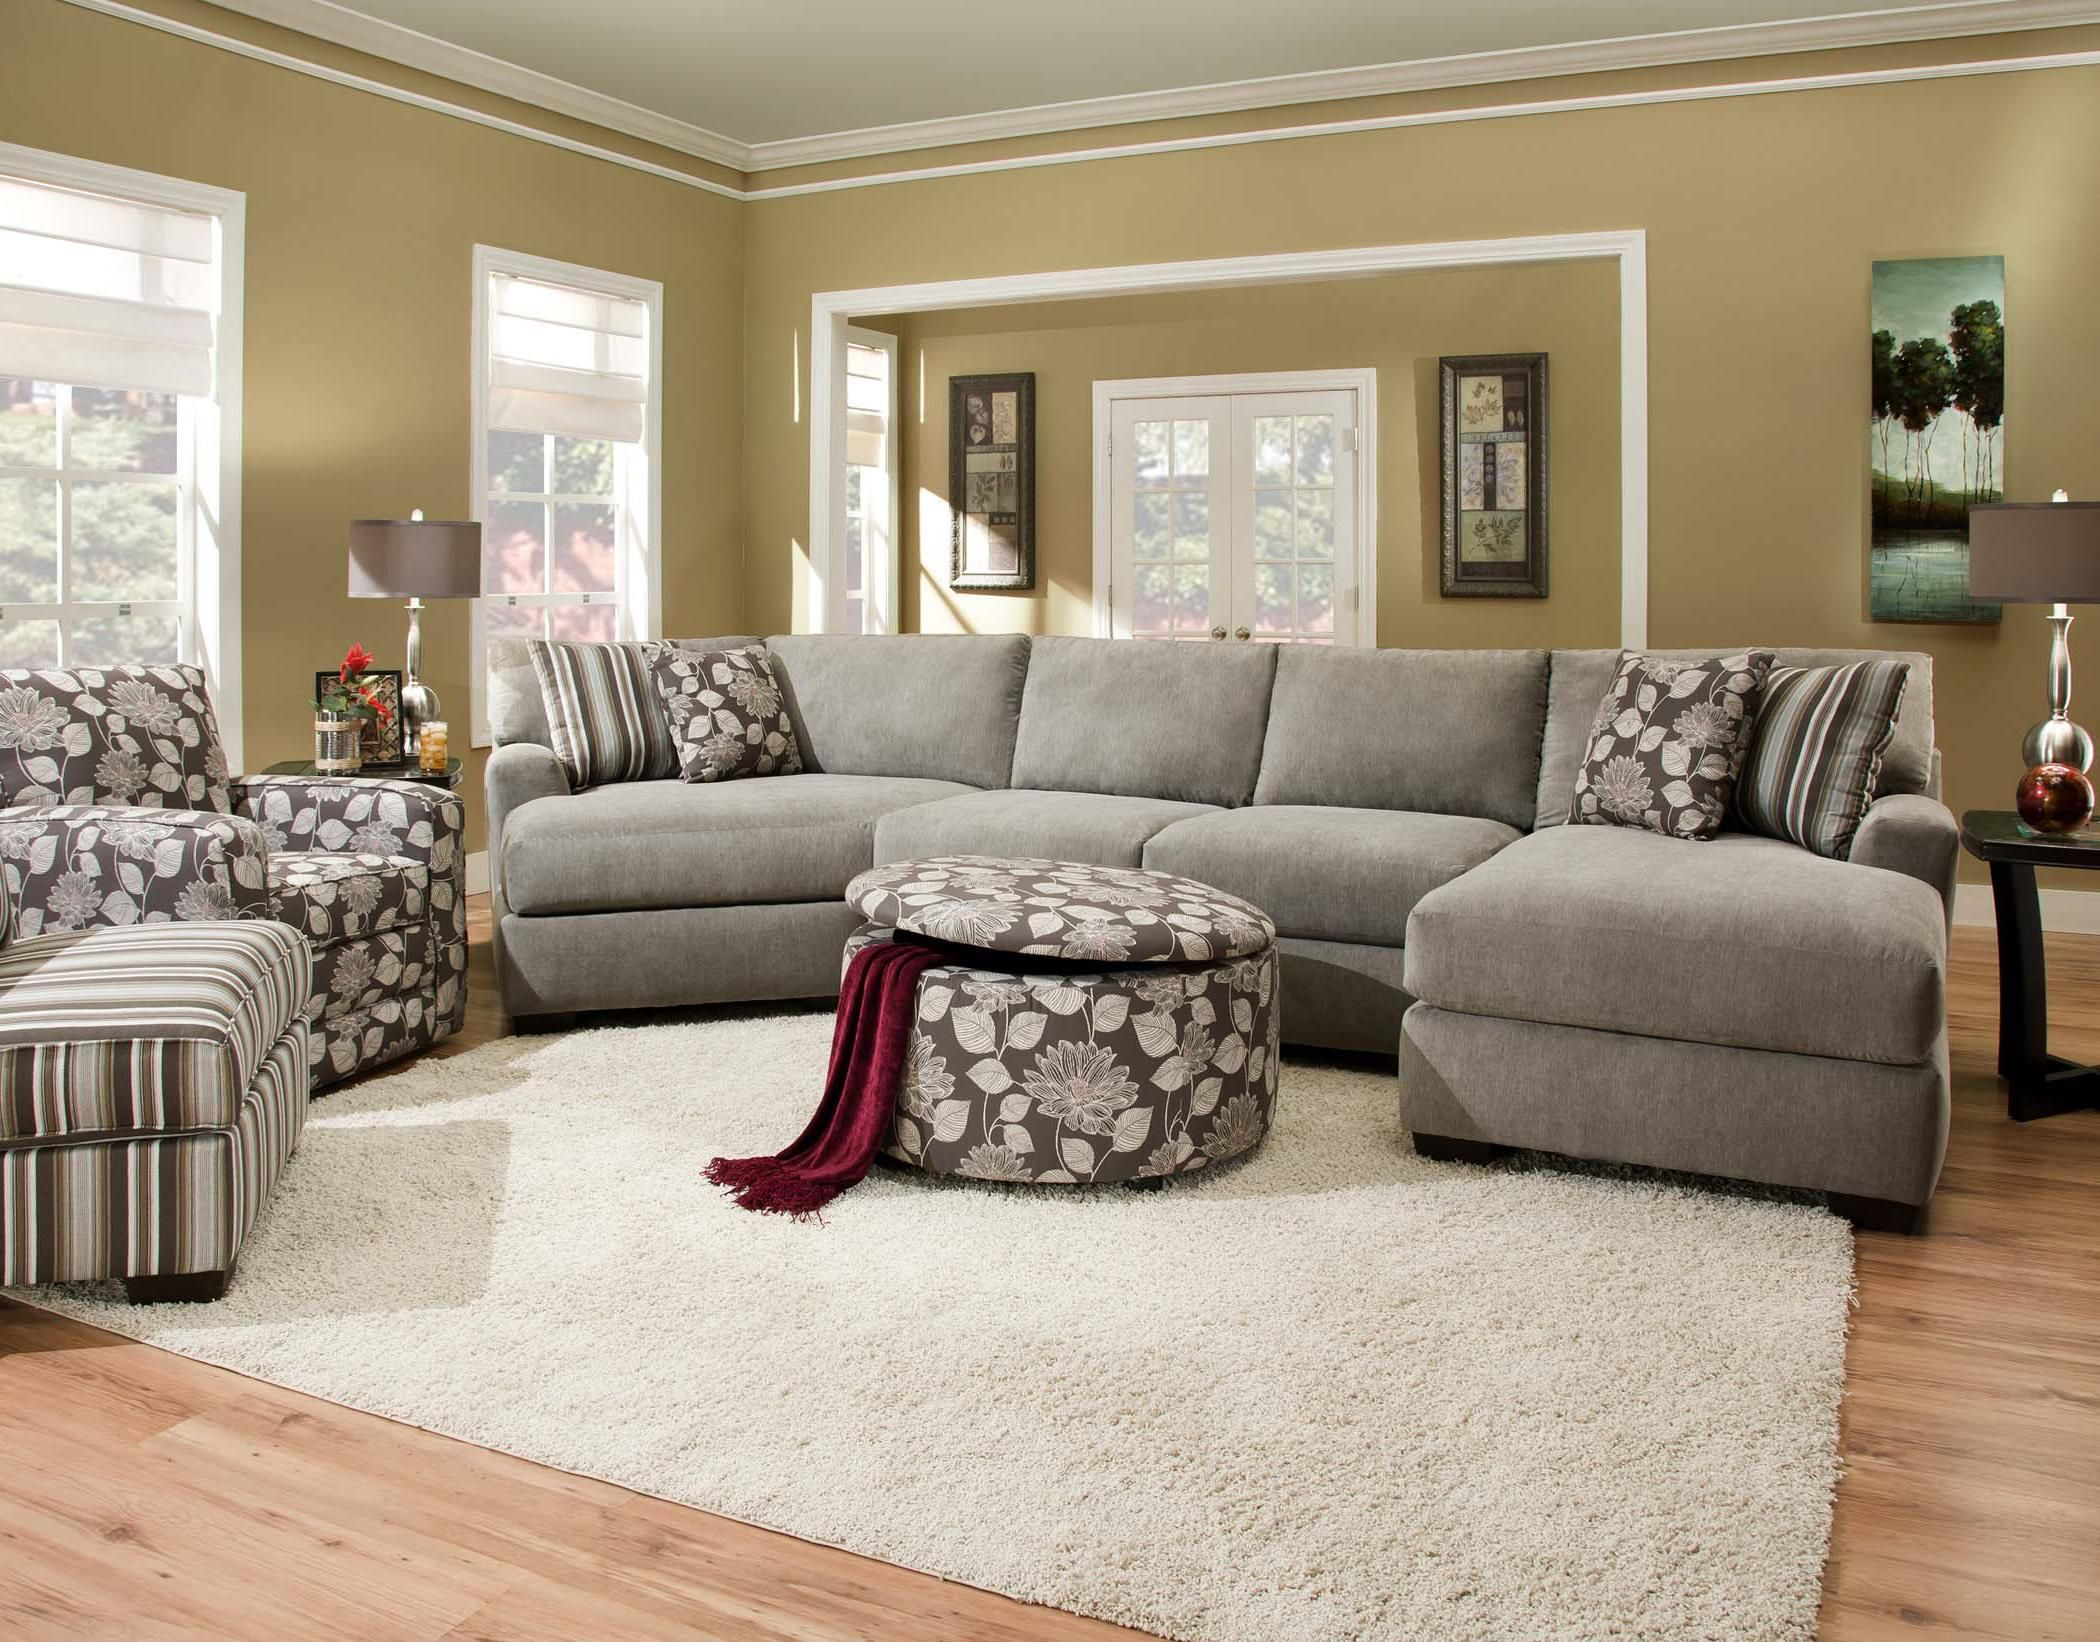 Sectional Sofa with 4 Seats furniture Pinterest